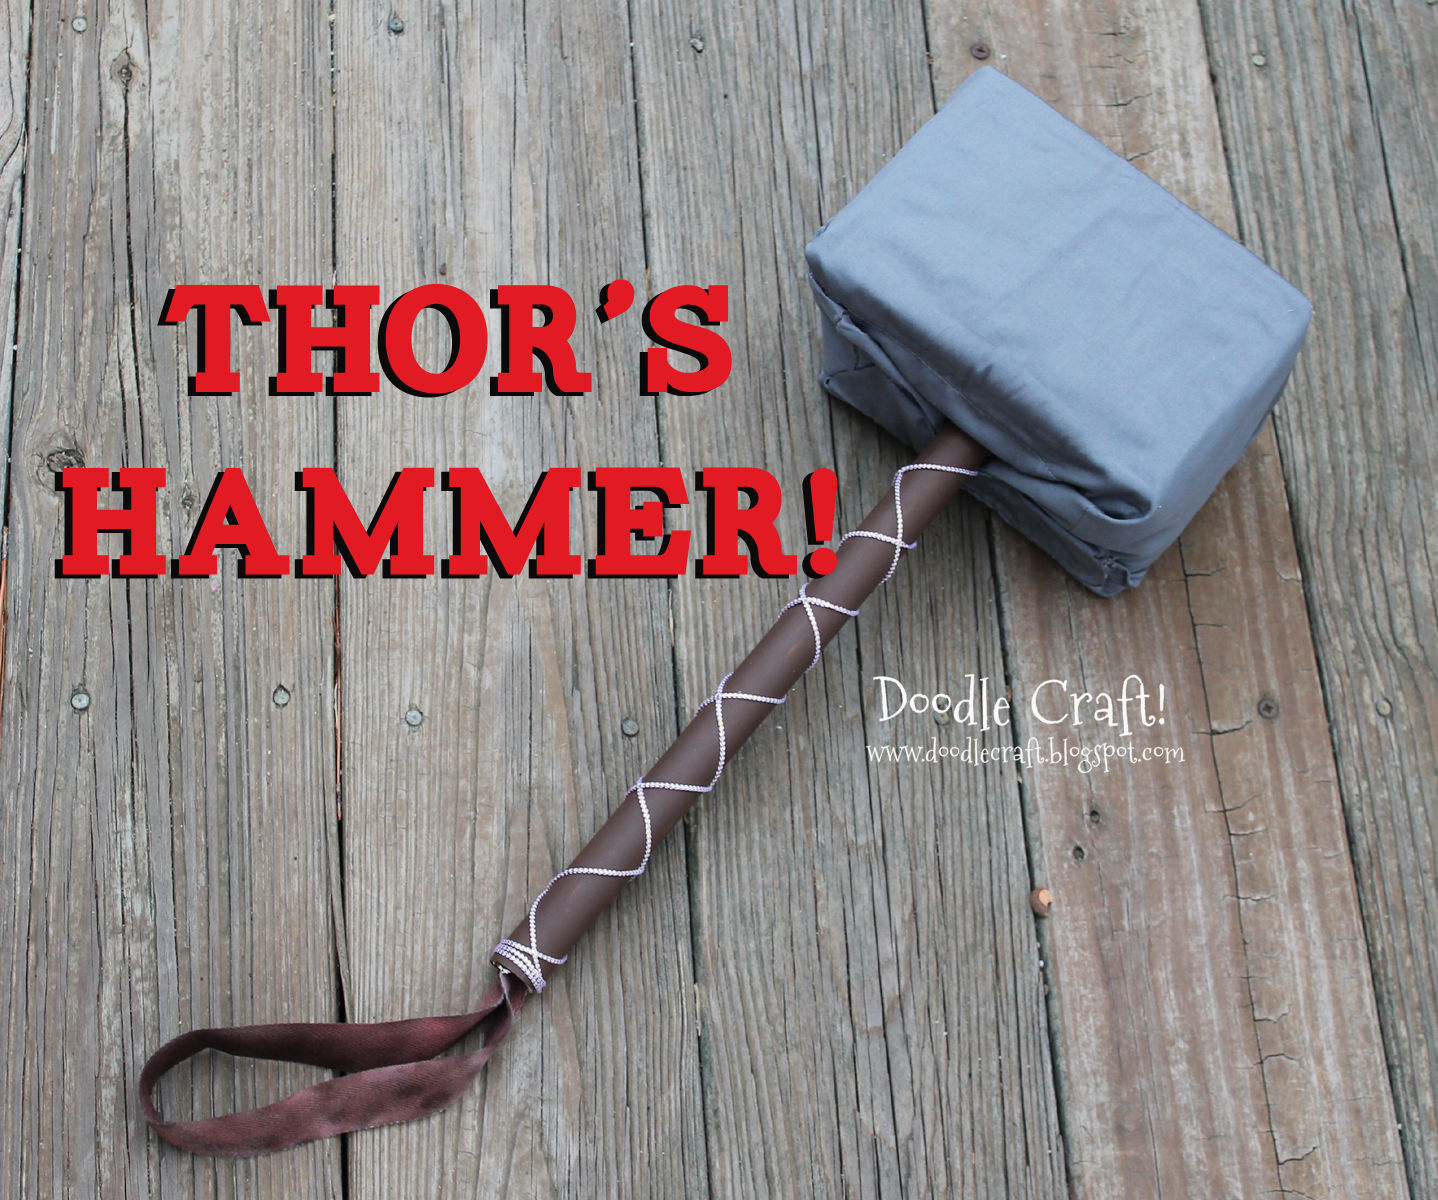 Thor's Mighty Odeon Hammer!